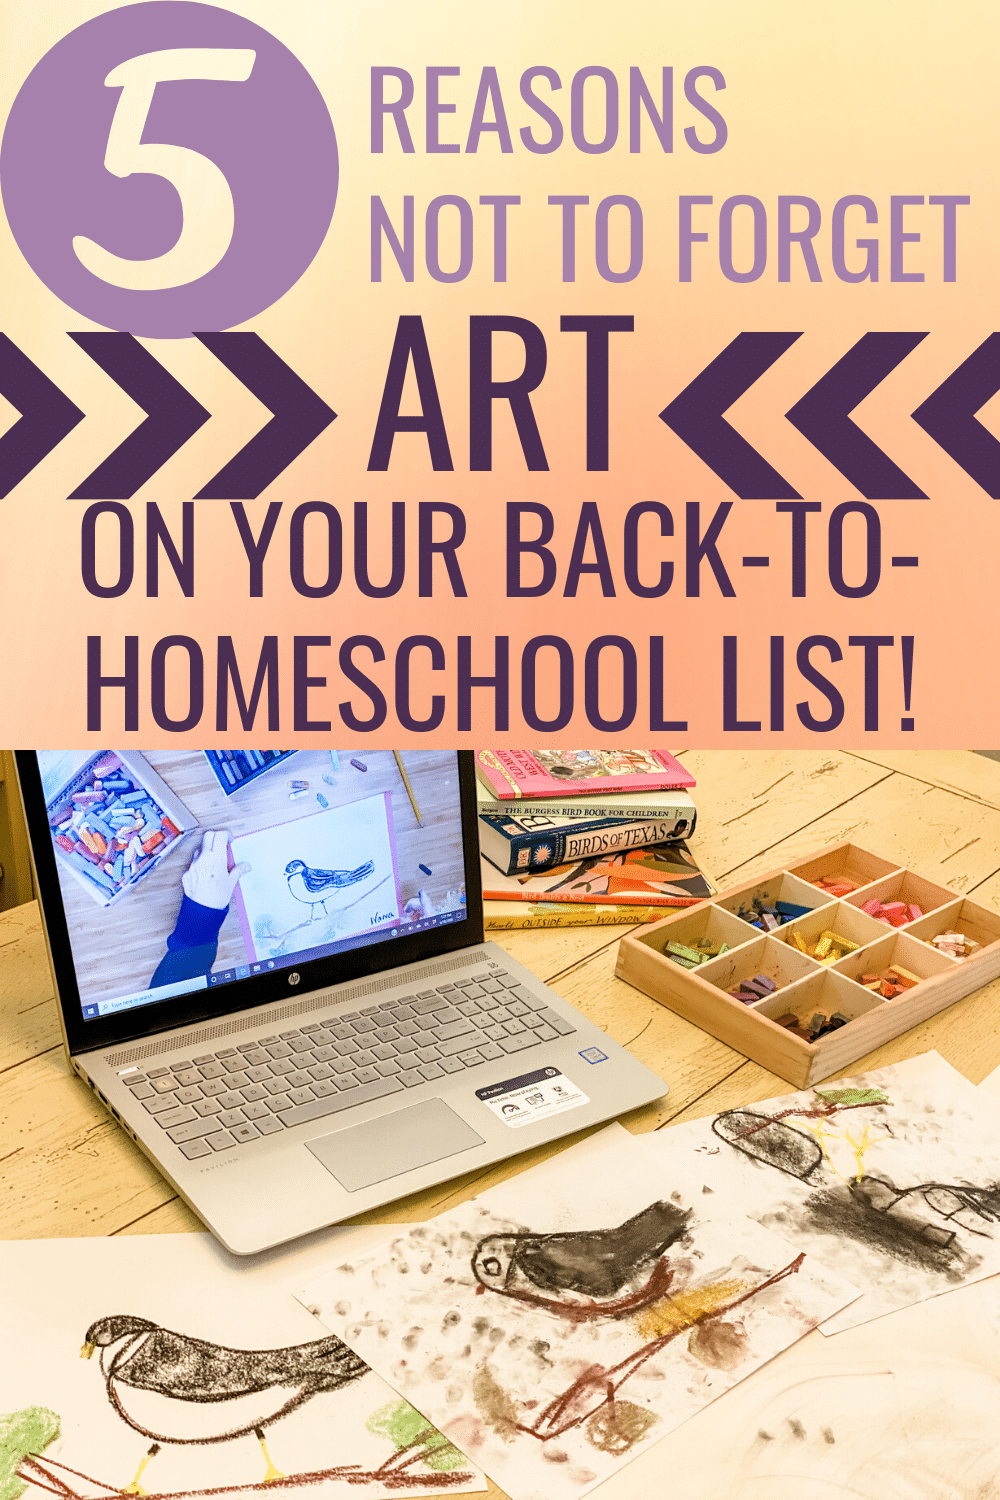 Creativity is essential to your homeschool's health.Here are five reasons not to forget art on your back to homeschool list.